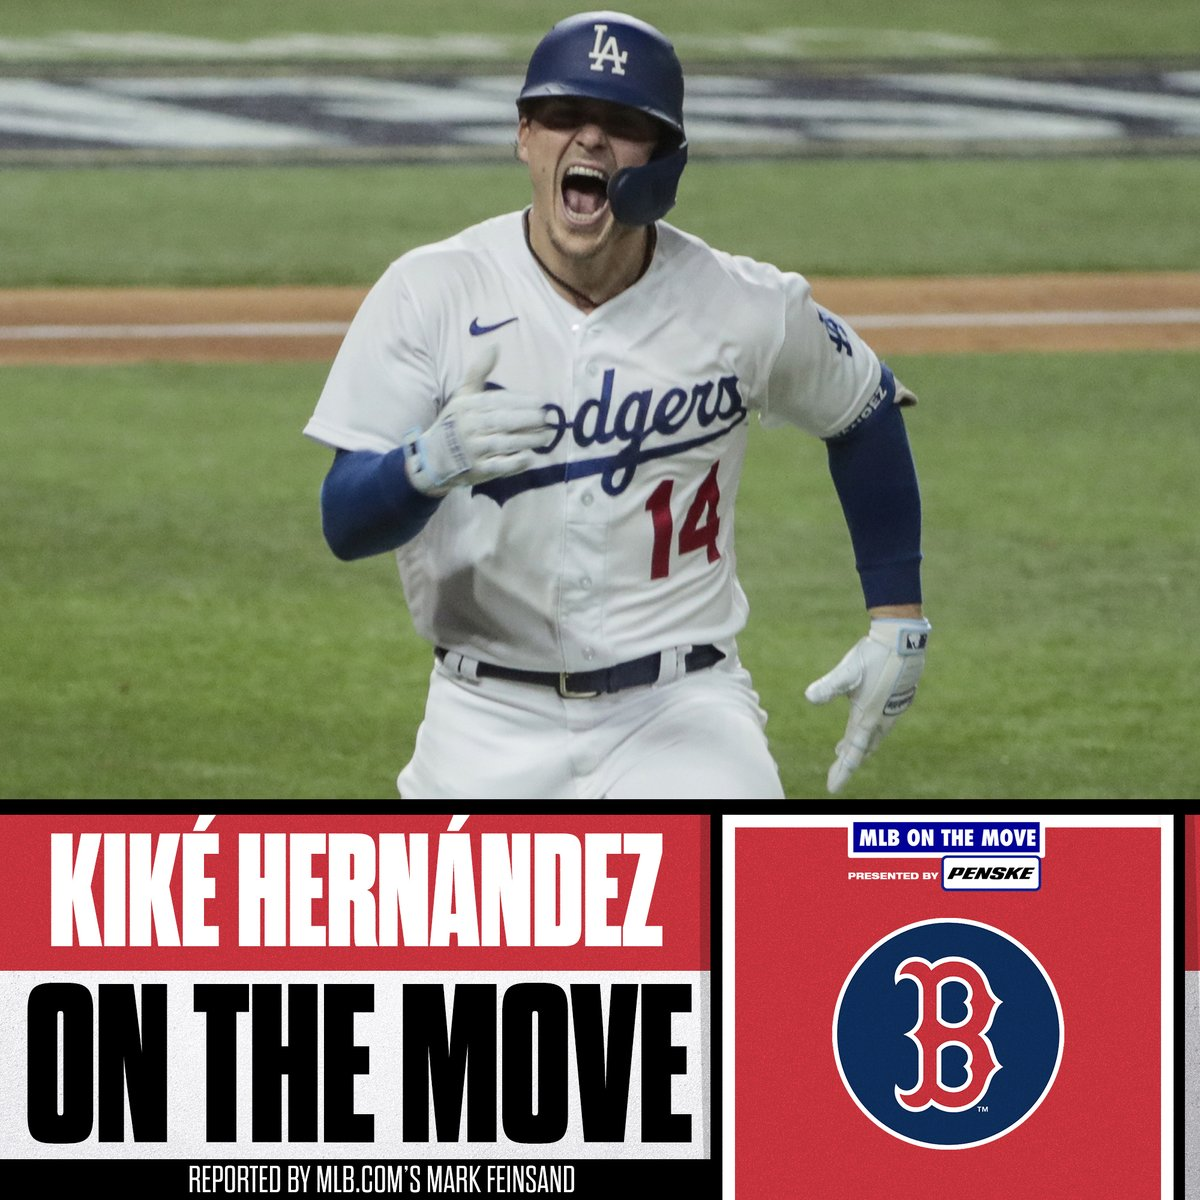 Boston is making moves.   @RedSox agree to deals with INF/OF Kiké Hernández and RHP Garrett Richards, per @Feinsand and @IanMBrowne.